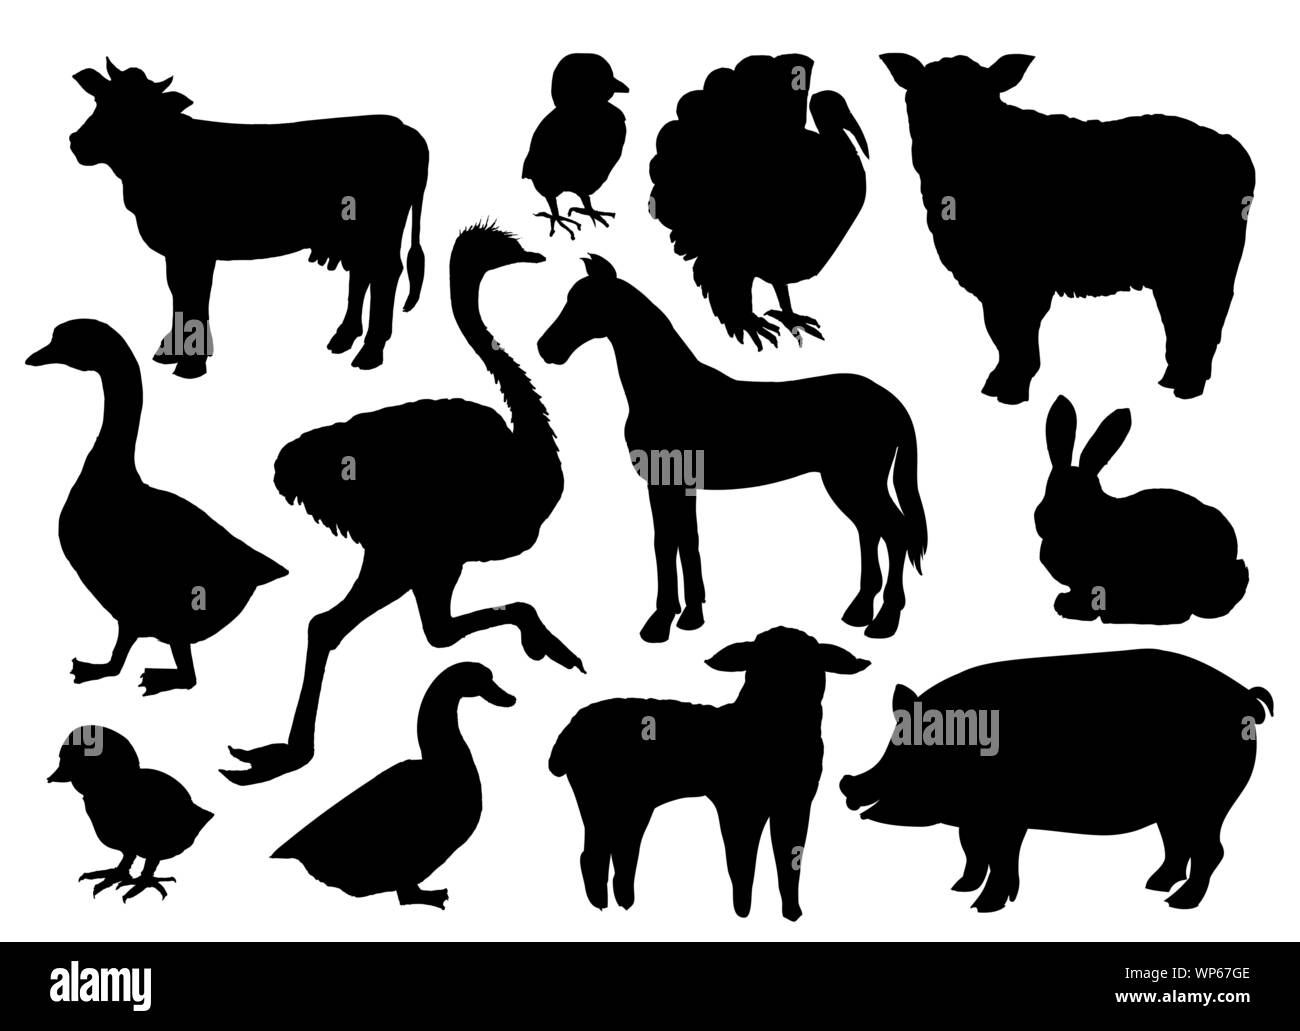 Farm animals livestock vector black silhouettes isolated on white. Cow, sheep, pig, horse, ostrich, duck, rabbit, goose, turkey bird and lamb, handdrawn icons or symbols Stock Vector